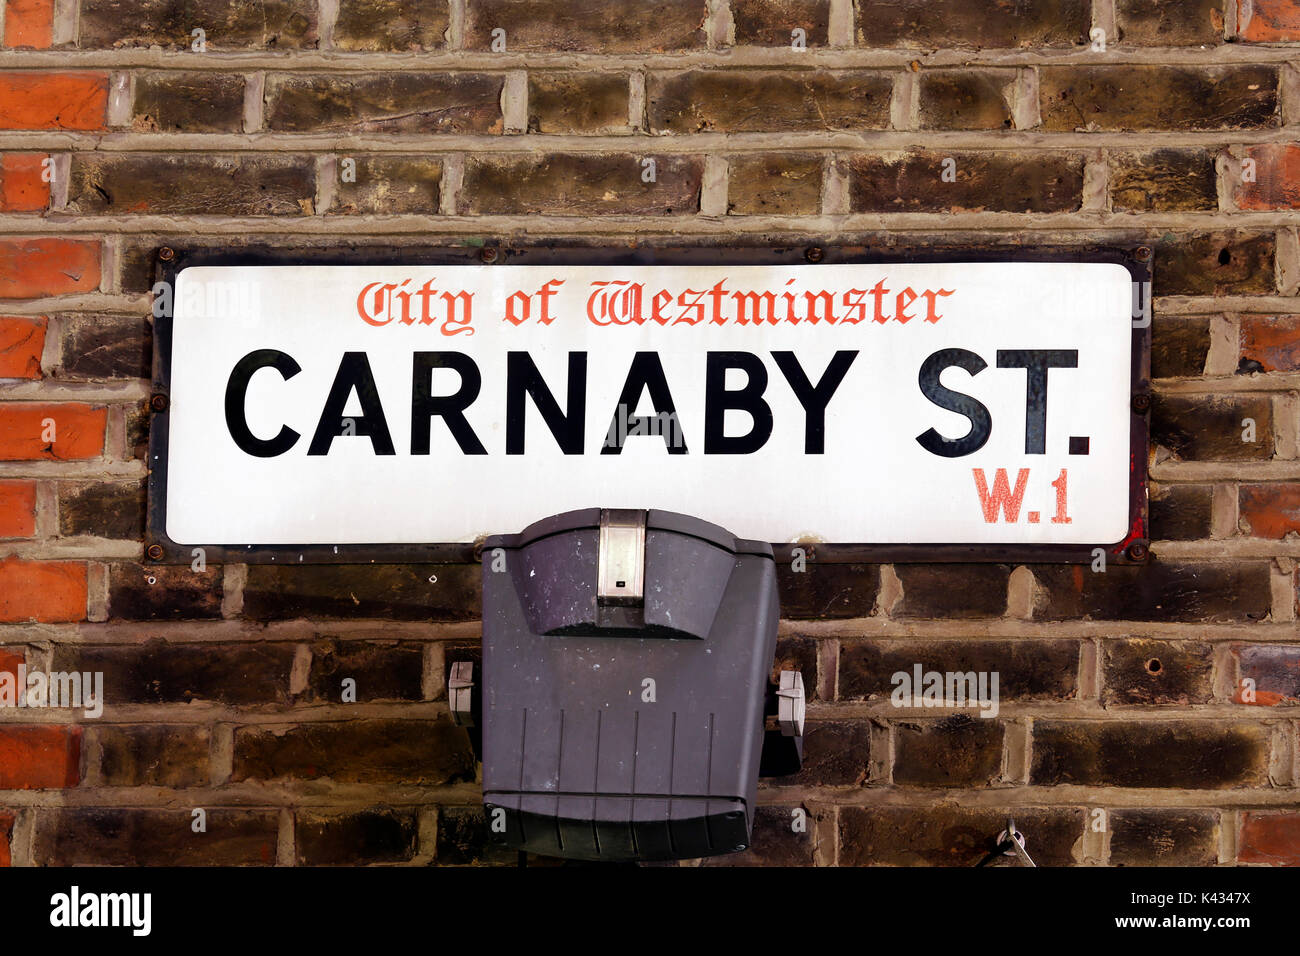 Street Sign of Carnaby Street, one of the London's major shopping streets,  completed in 1825, run through Piccadilly Circus and Oxford Circus. - Stock Image